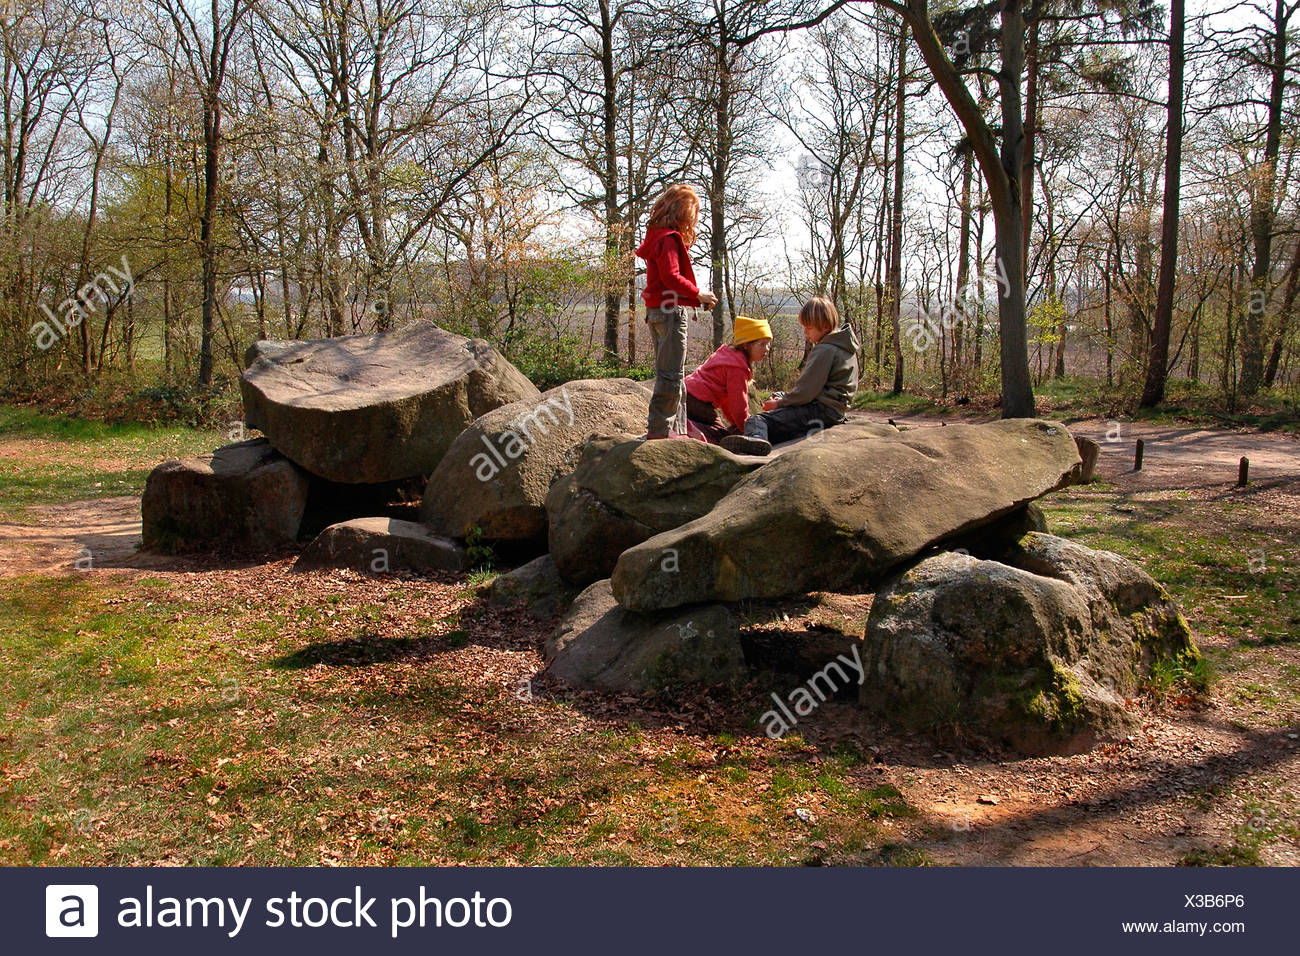 Spelende kinderen op hunebedden in Borger; Playing kids on Meatlithic thombs in Borger Stock Photo